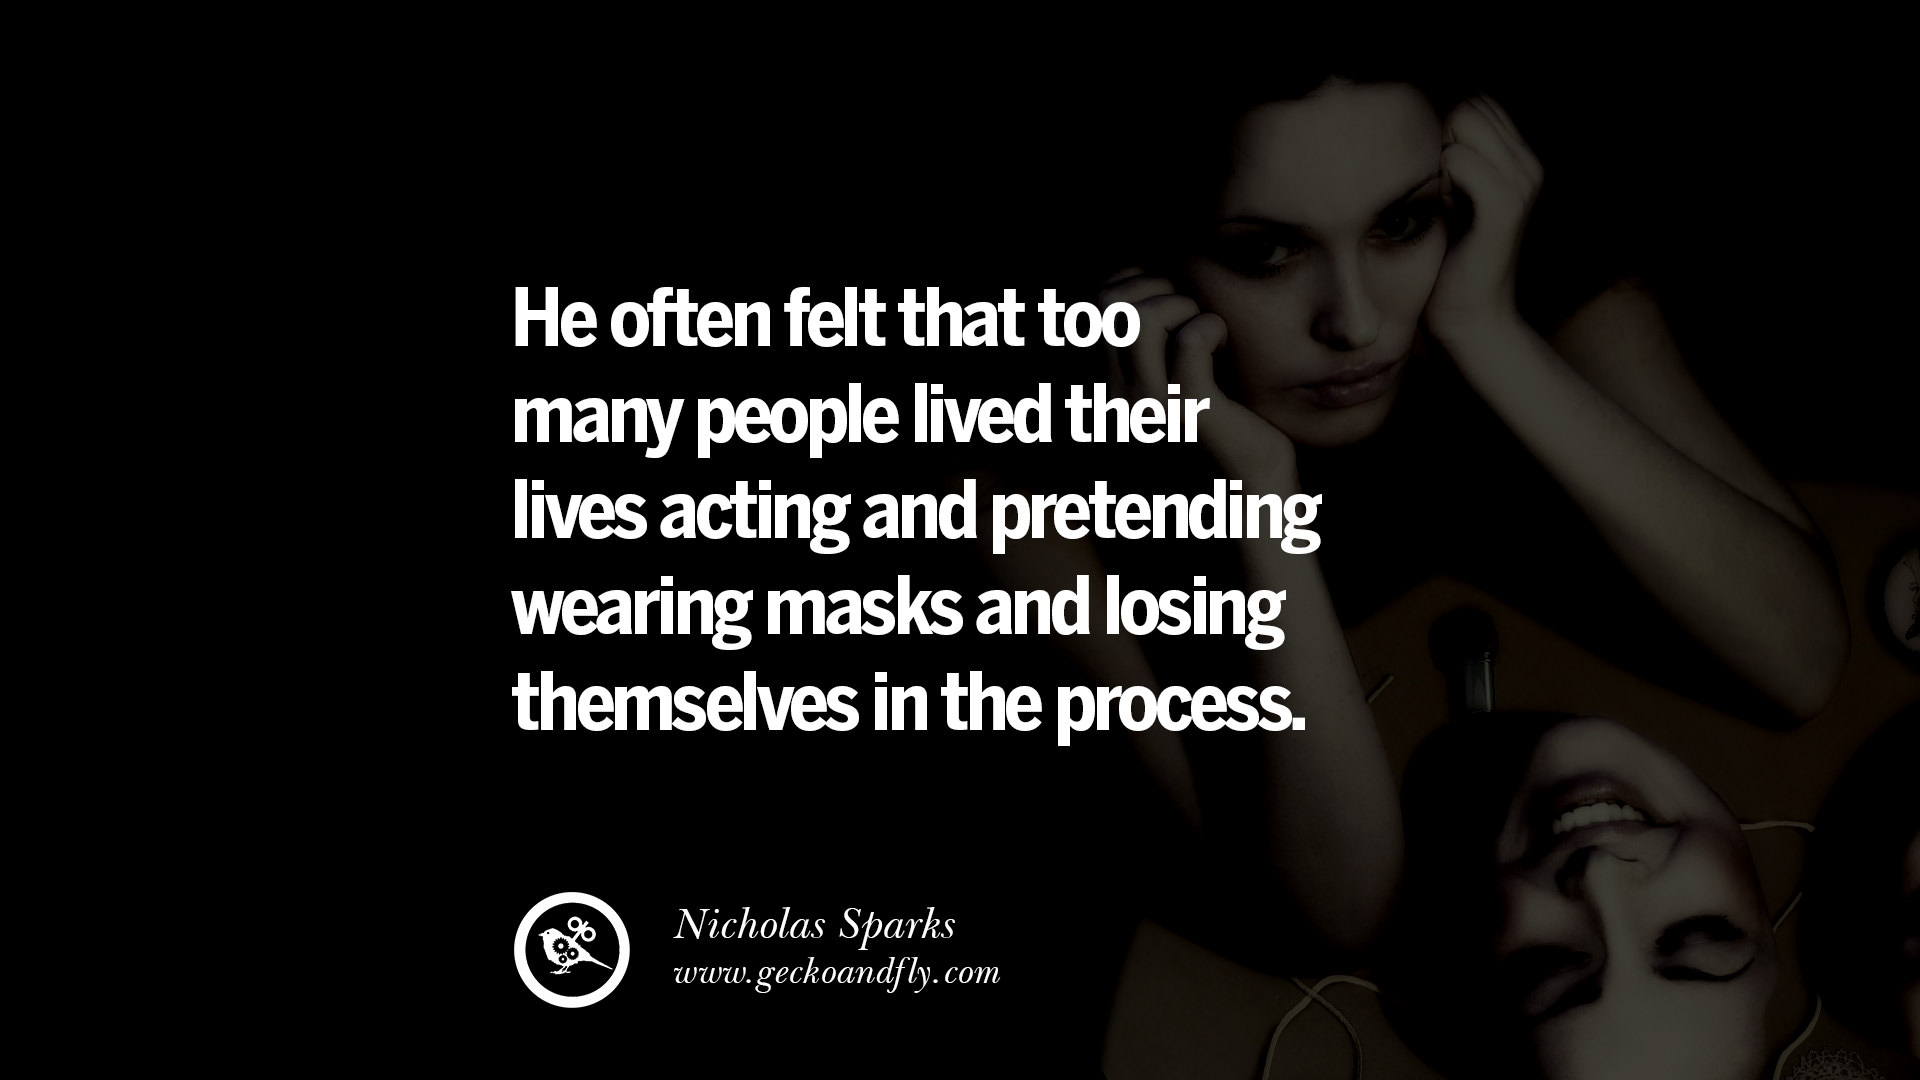 Quotes About Losing A Loved One Too Soon 20 Quotes On Wearing A Mask Lying And Hiding Oneself